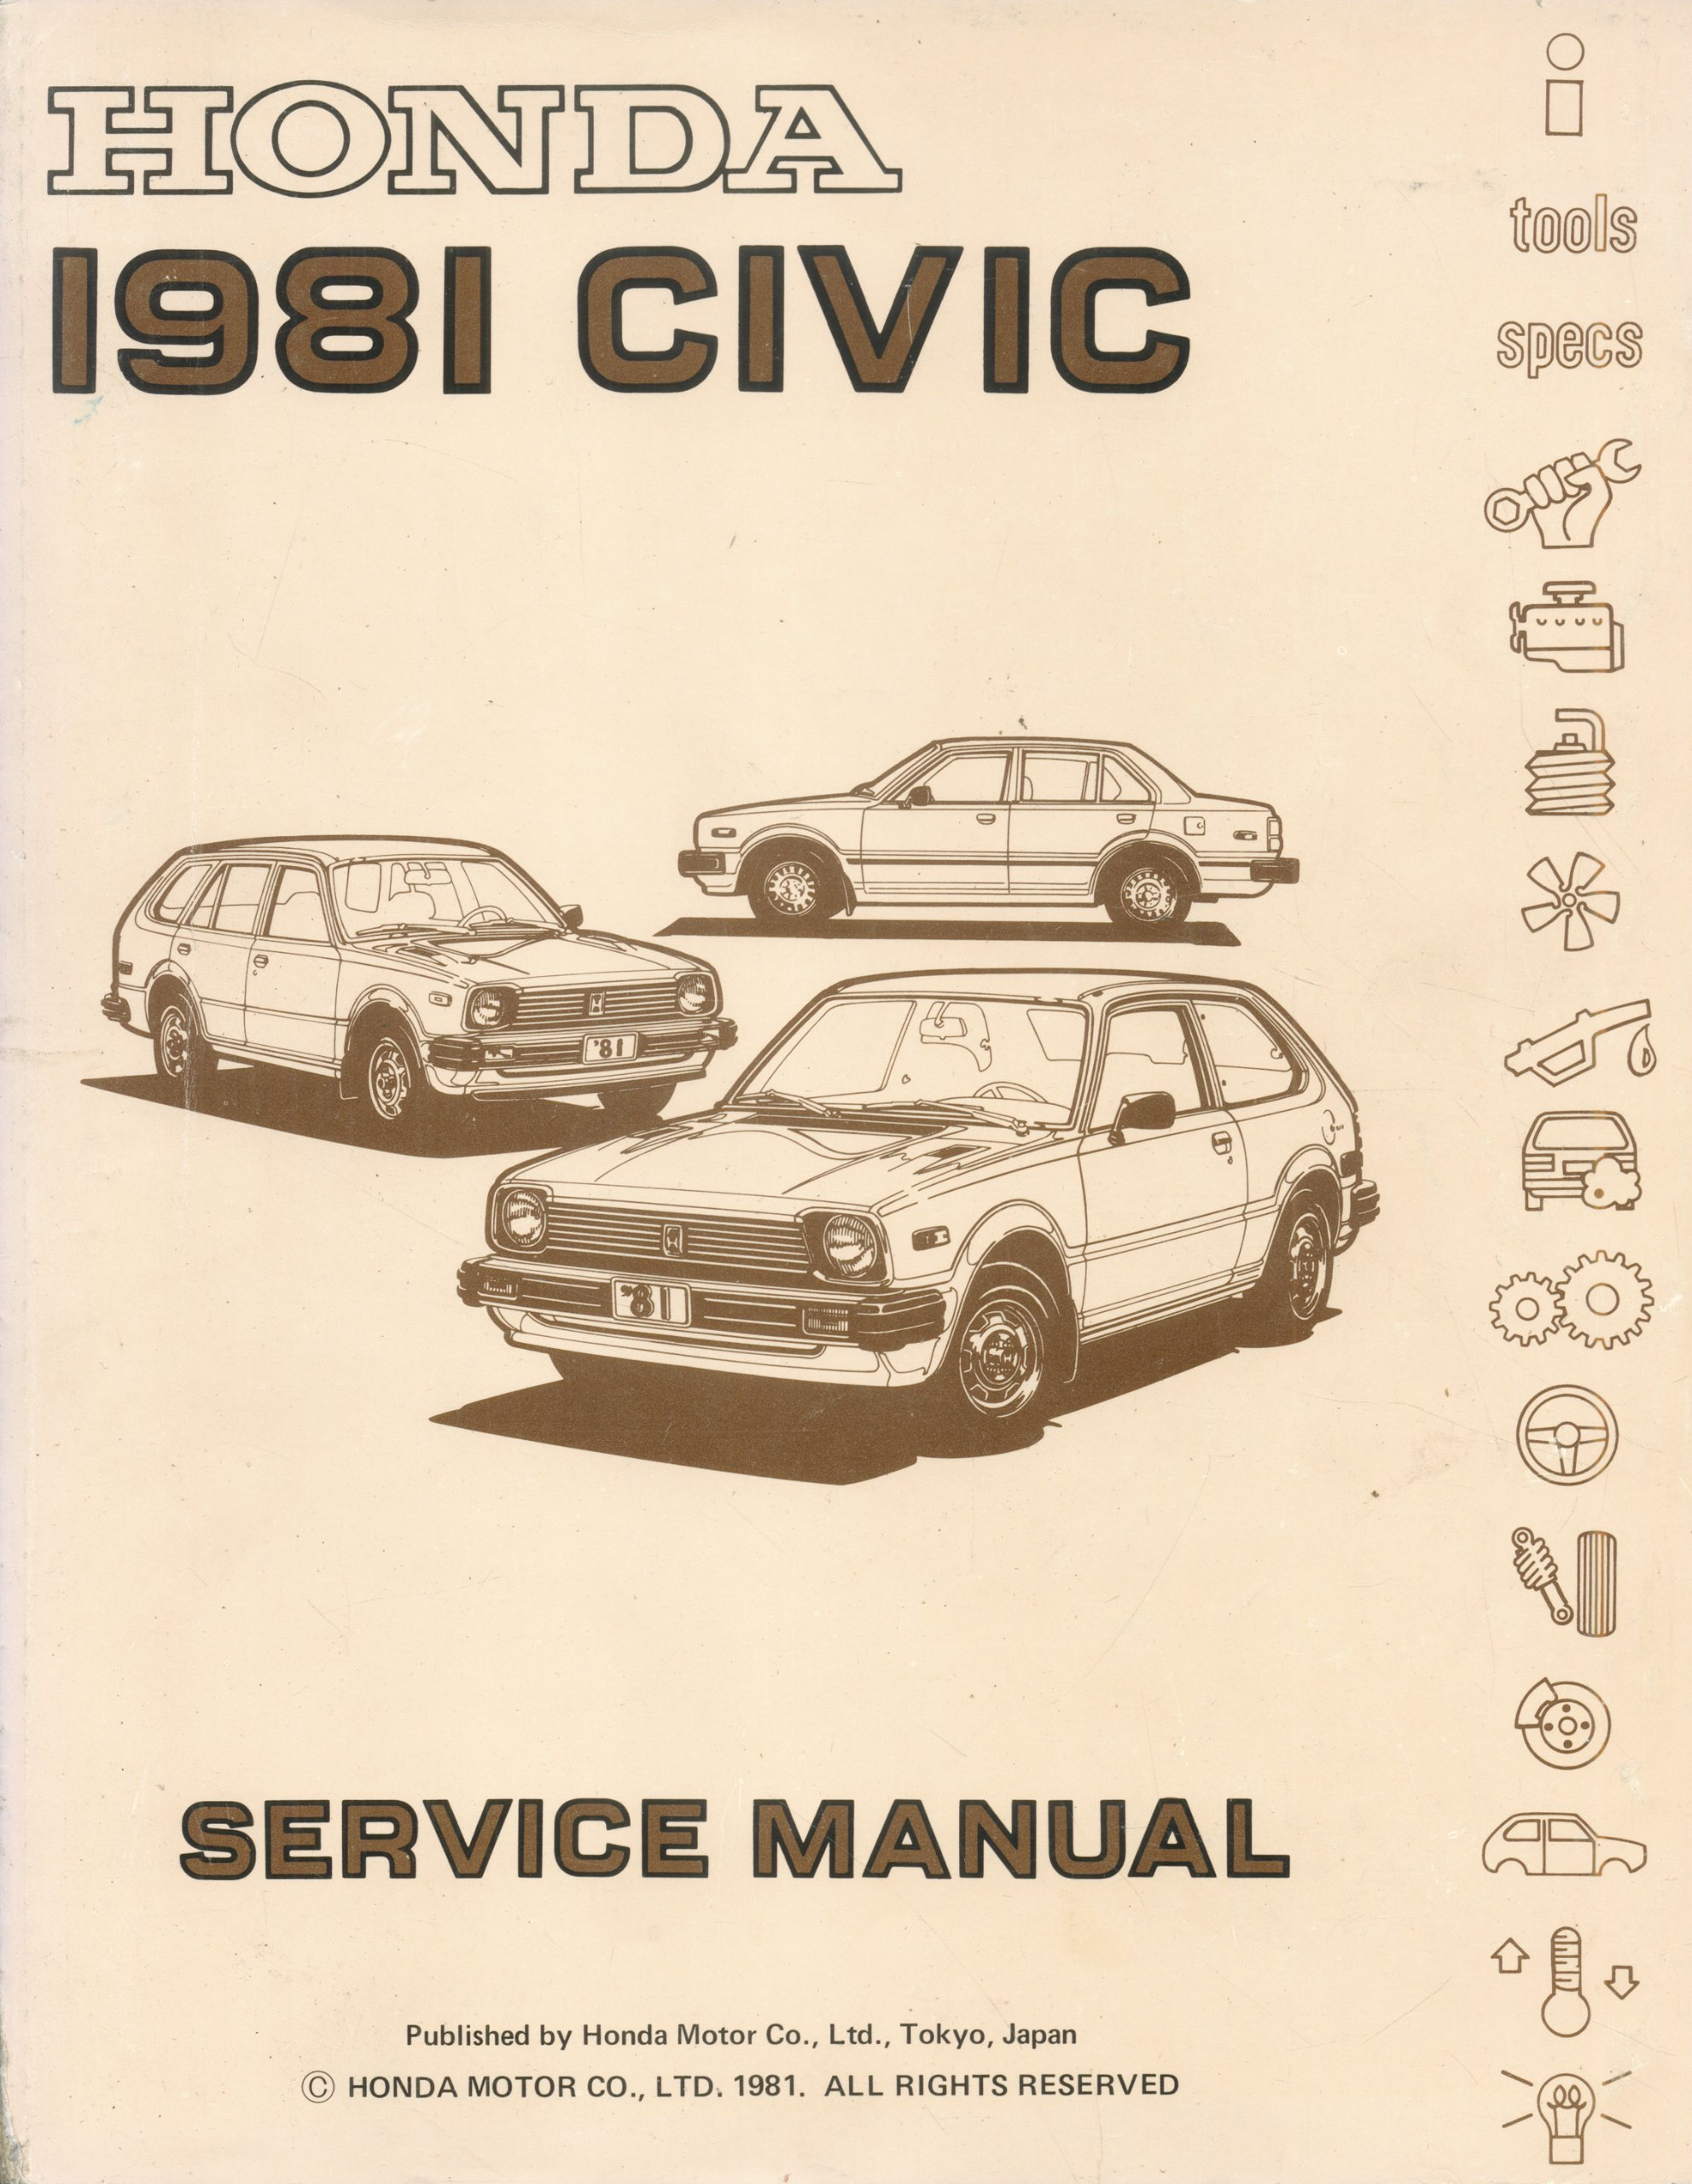 1981 Honda Civic Service Manual, Honda